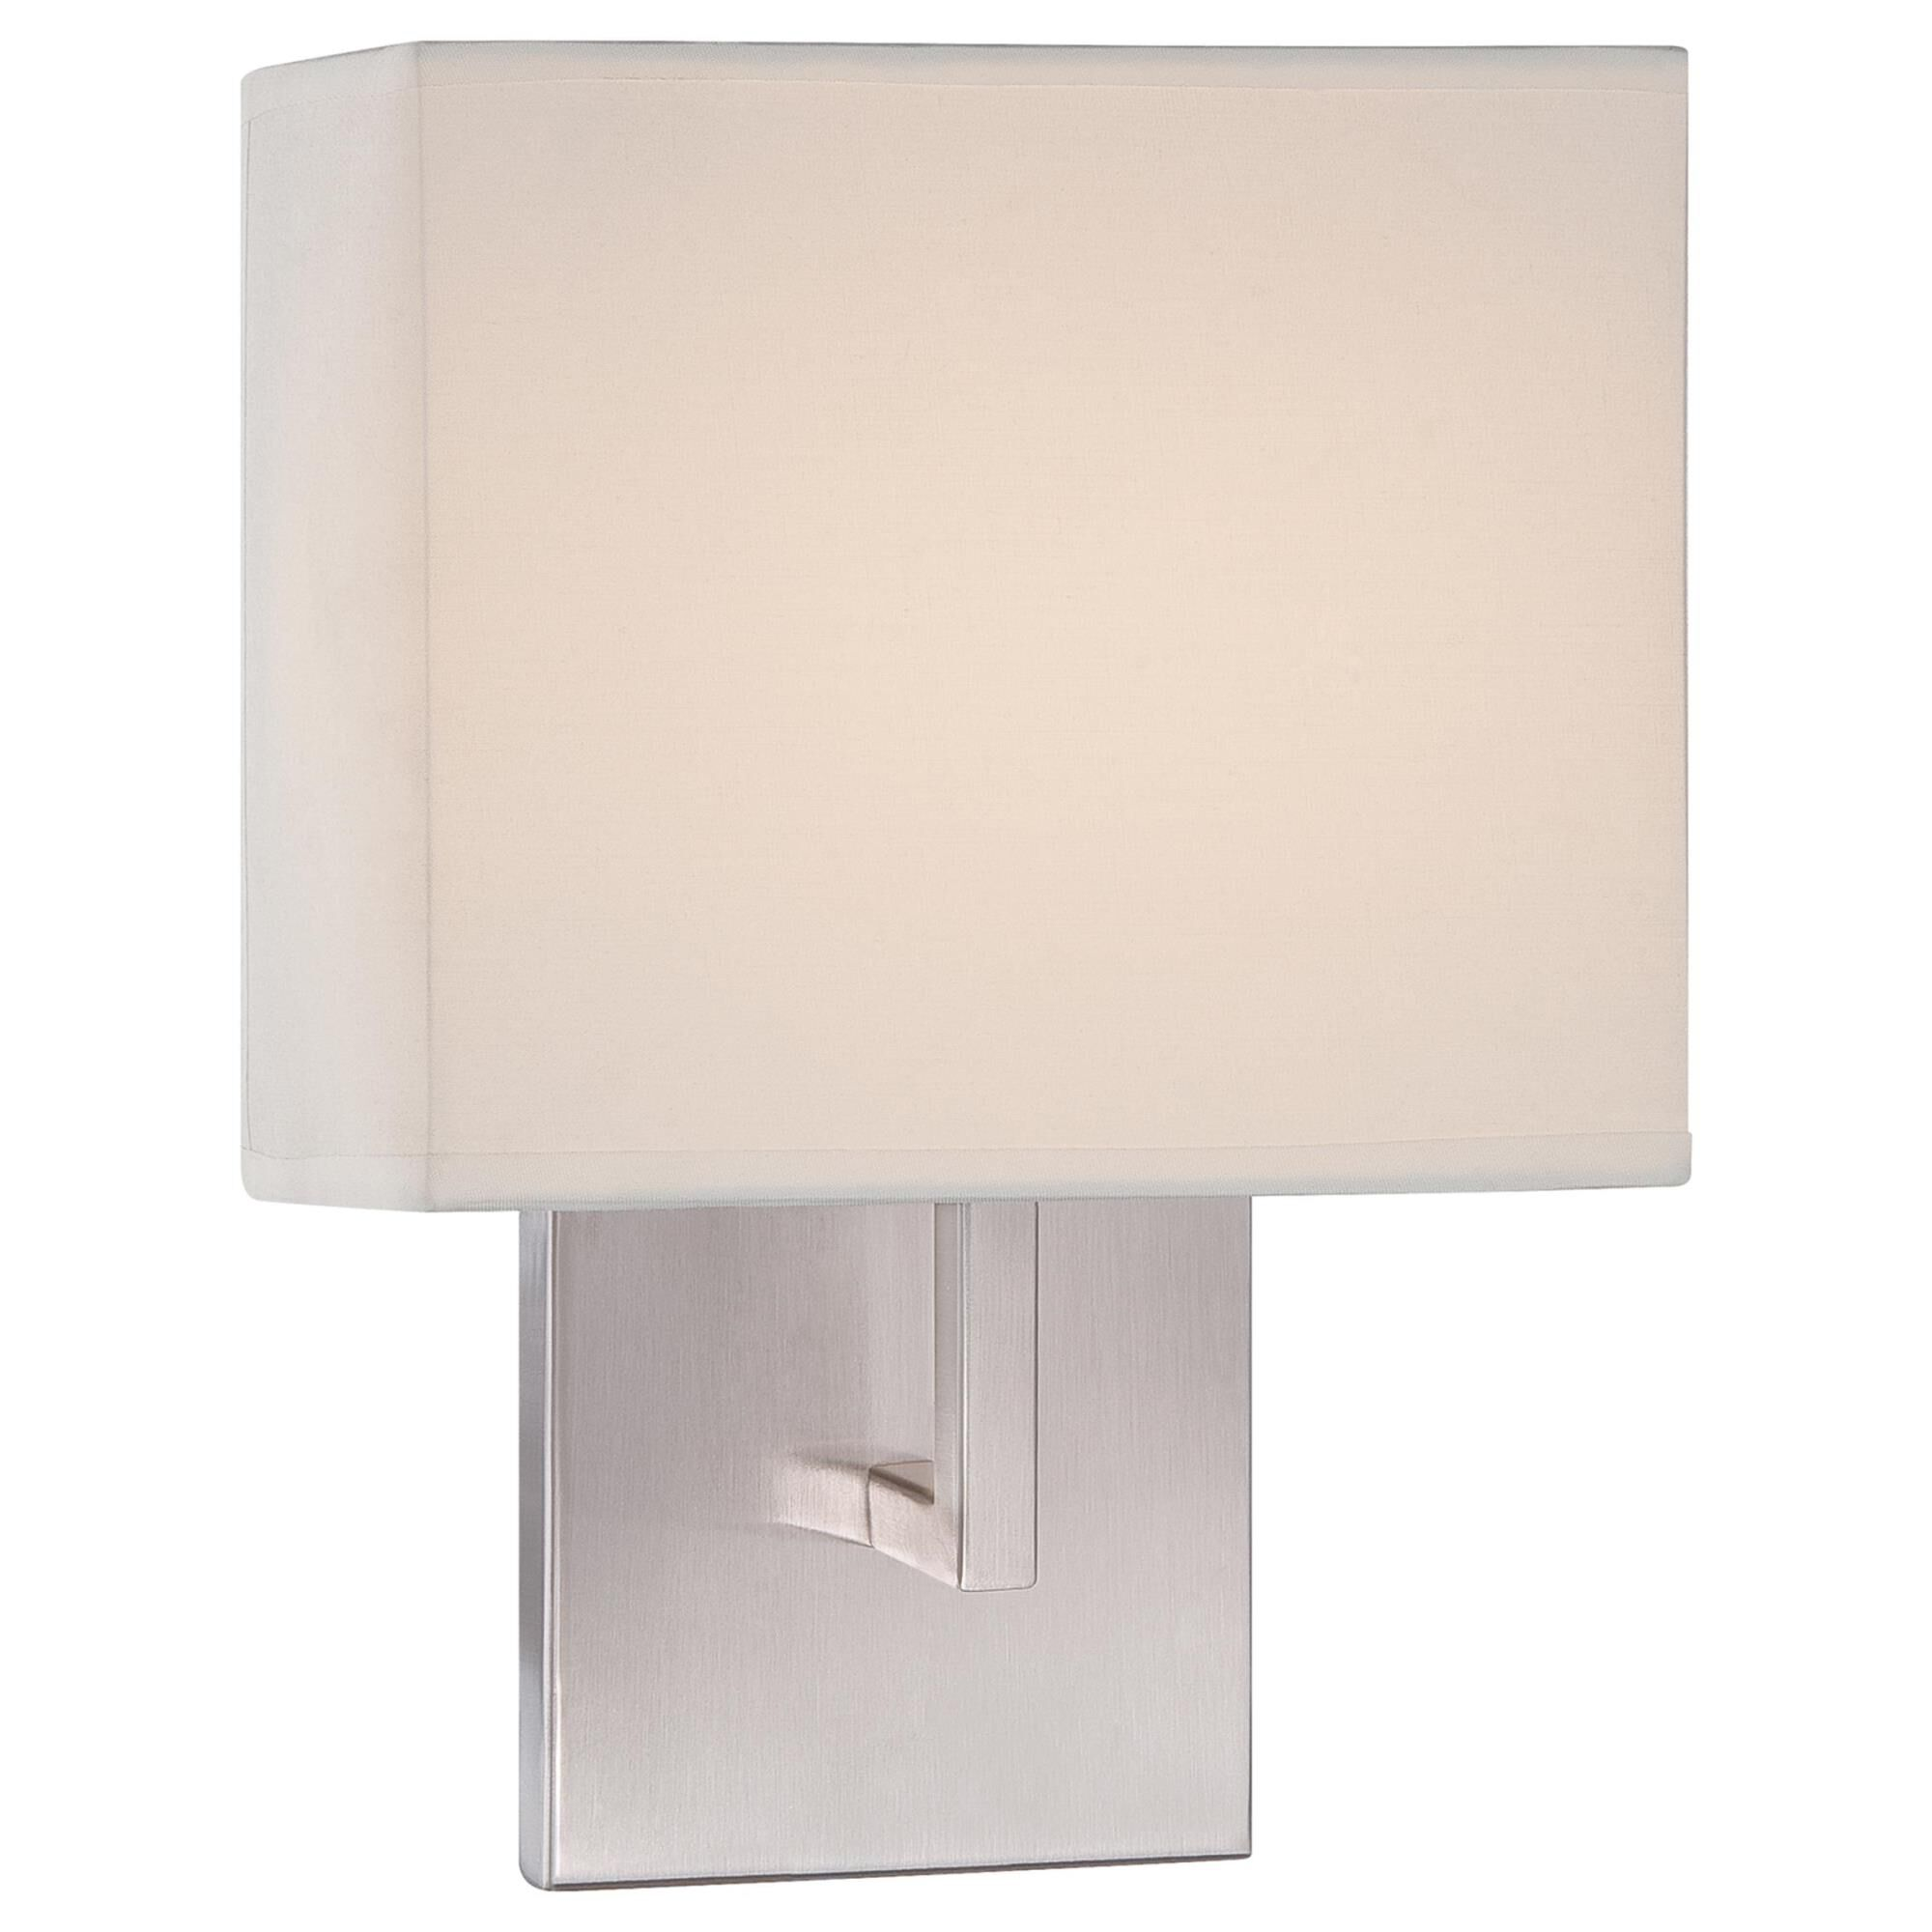 Kovacs 11 Inch Wall Sconce - P470-084-l - Transitional